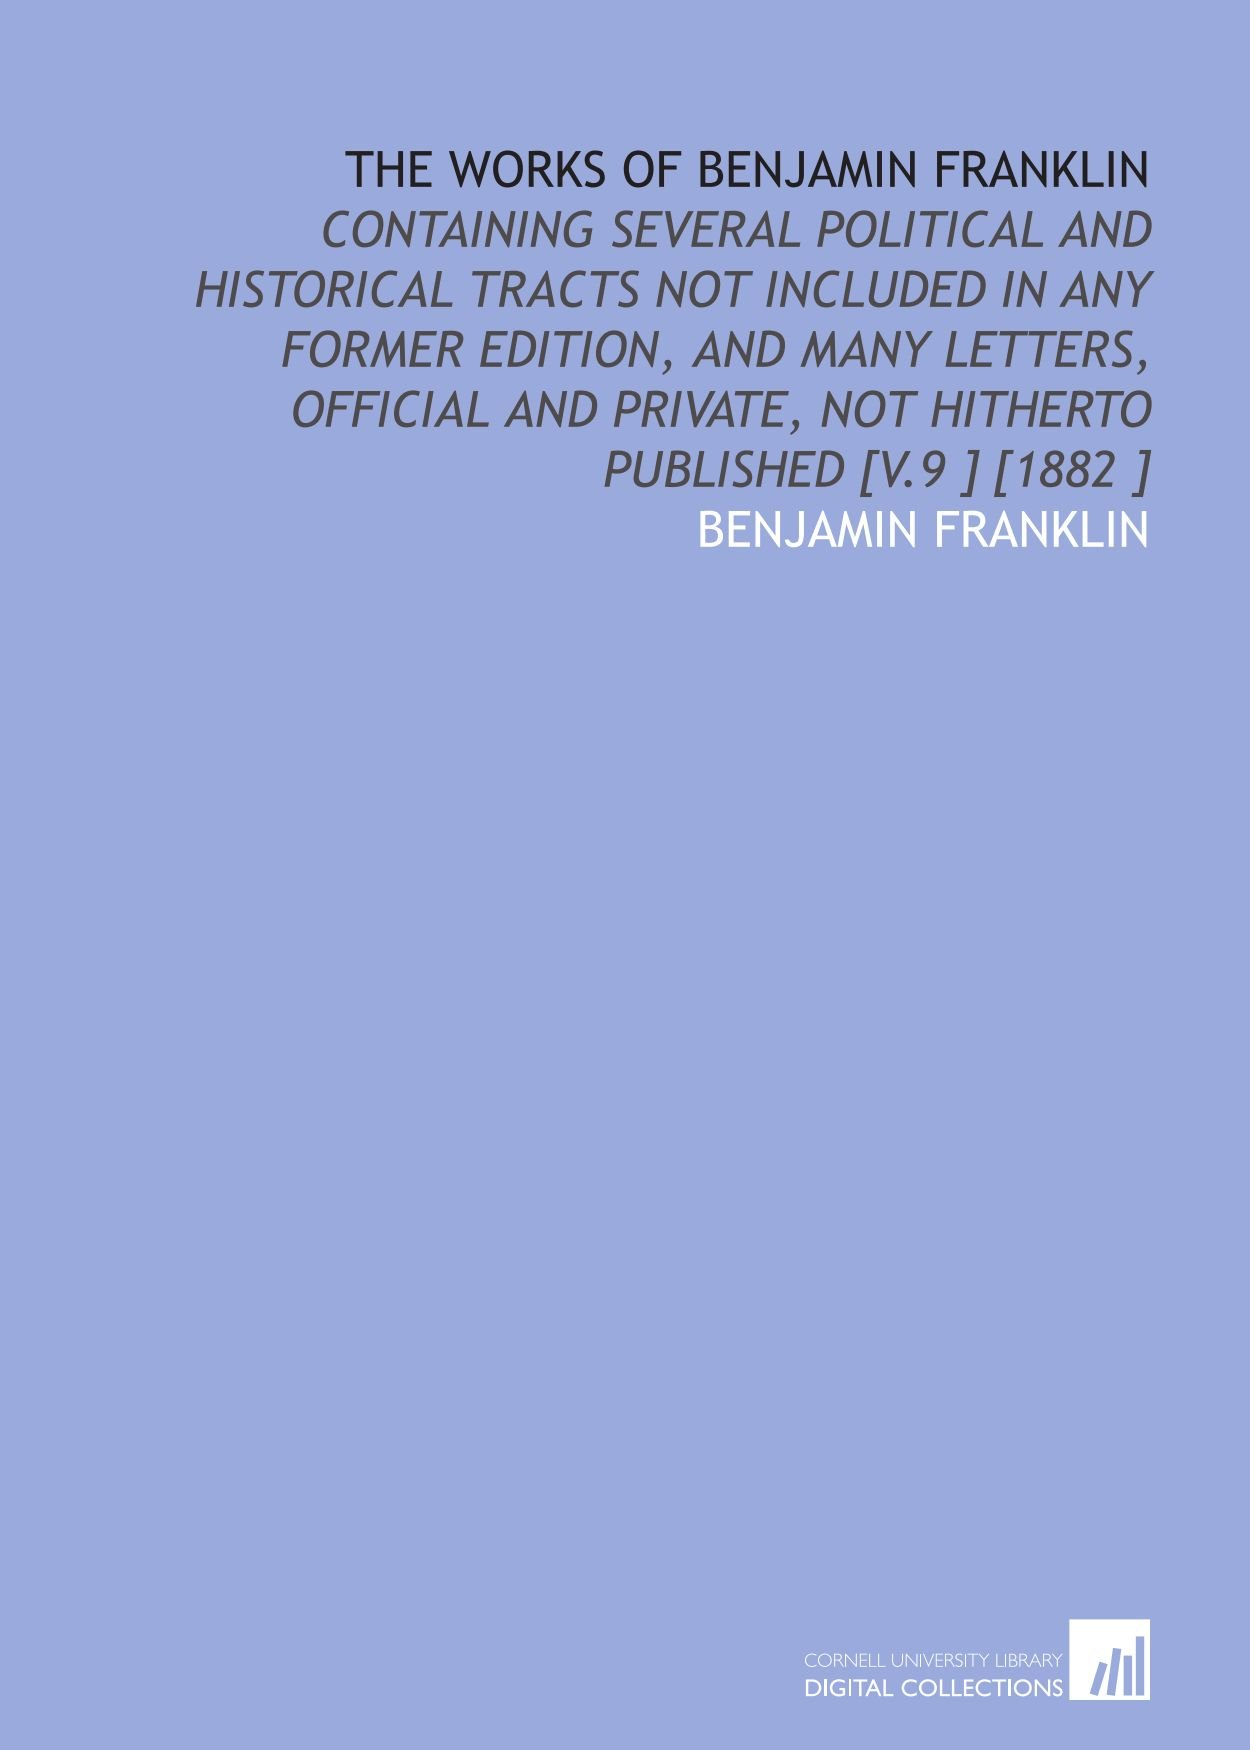 Download The Works of Benjamin Franklin: Containing Several Political and Historical Tracts Not Included in Any Former Edition, and Many Letters, Official and Private, Not Hitherto Published [V.9 ] [1882 ] pdf